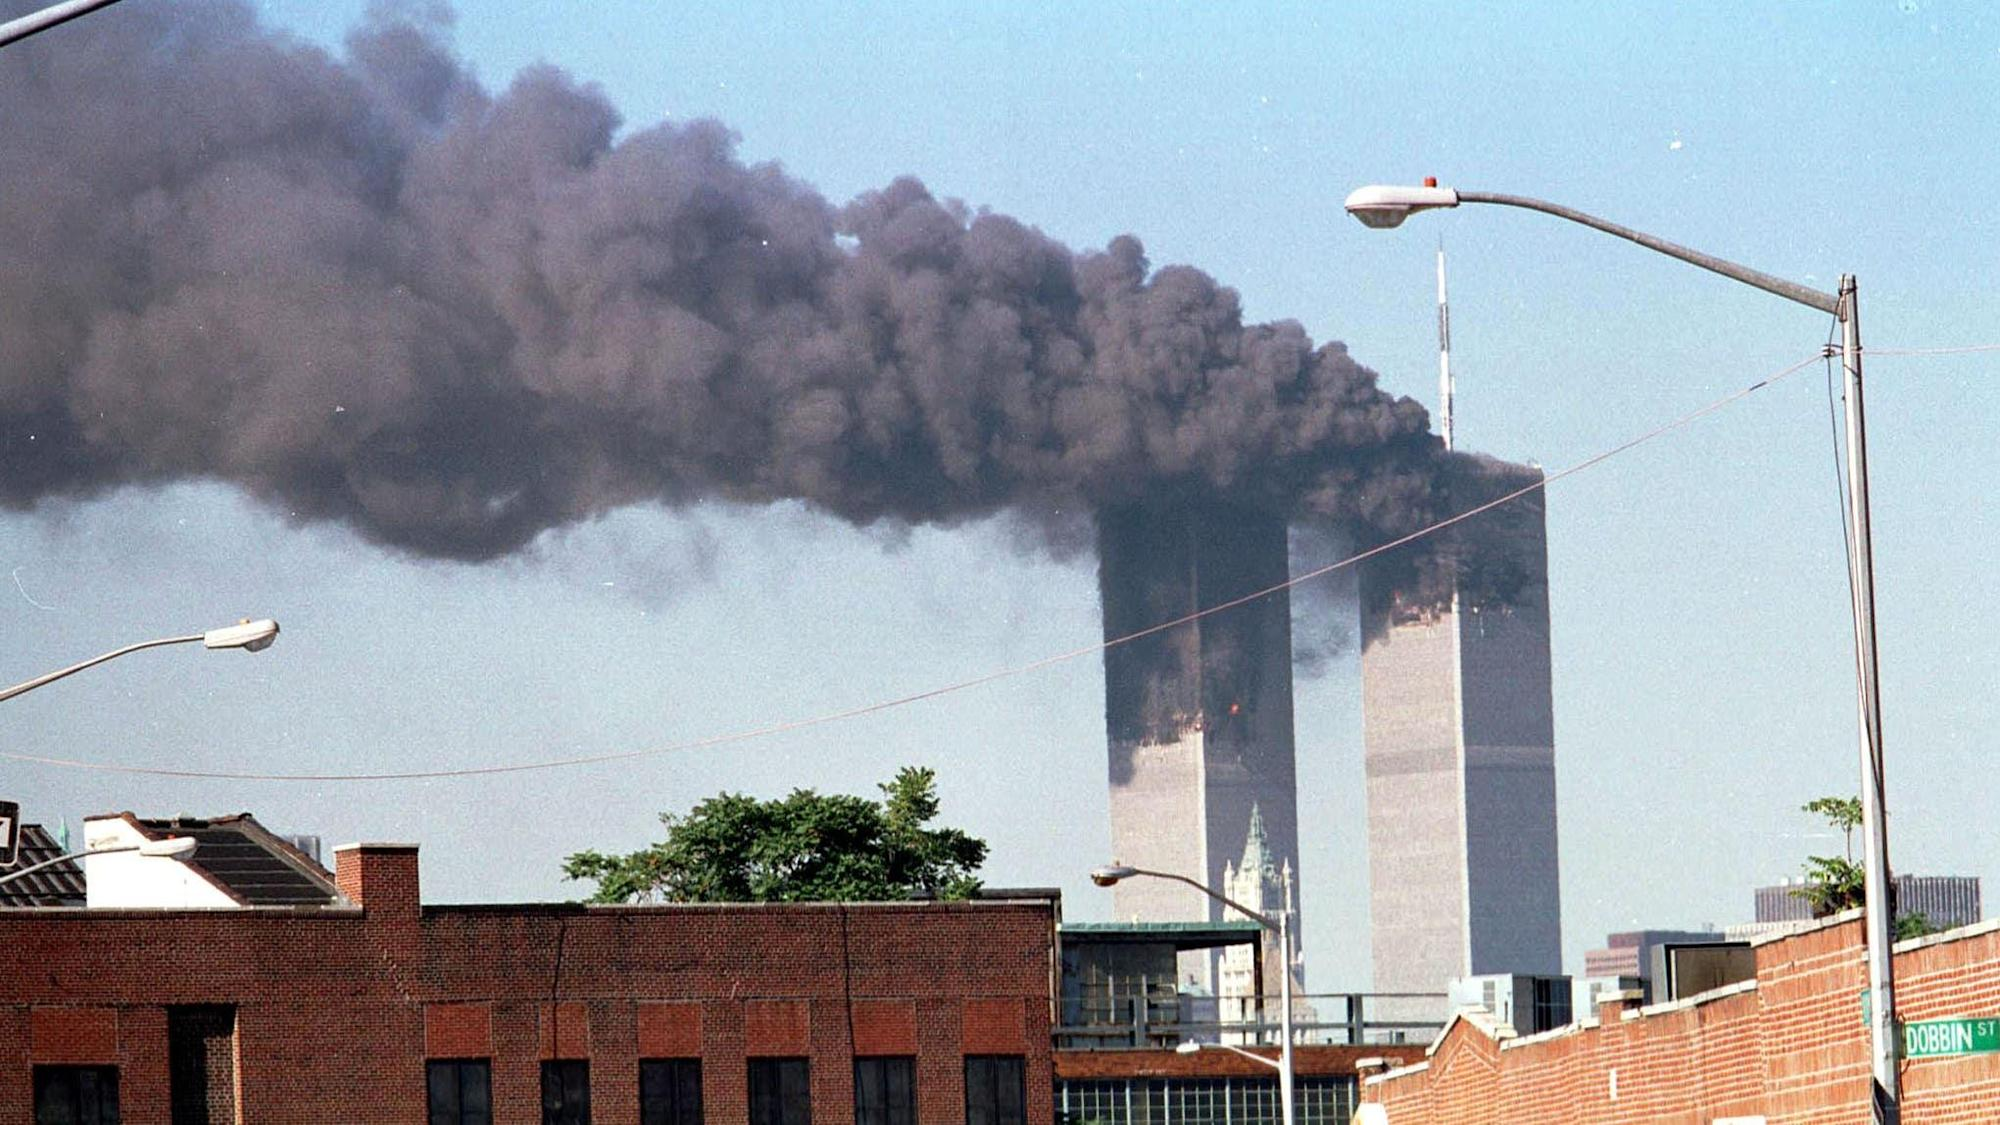 Channel 4 announces new September 11 film focusing on children who lost fathers